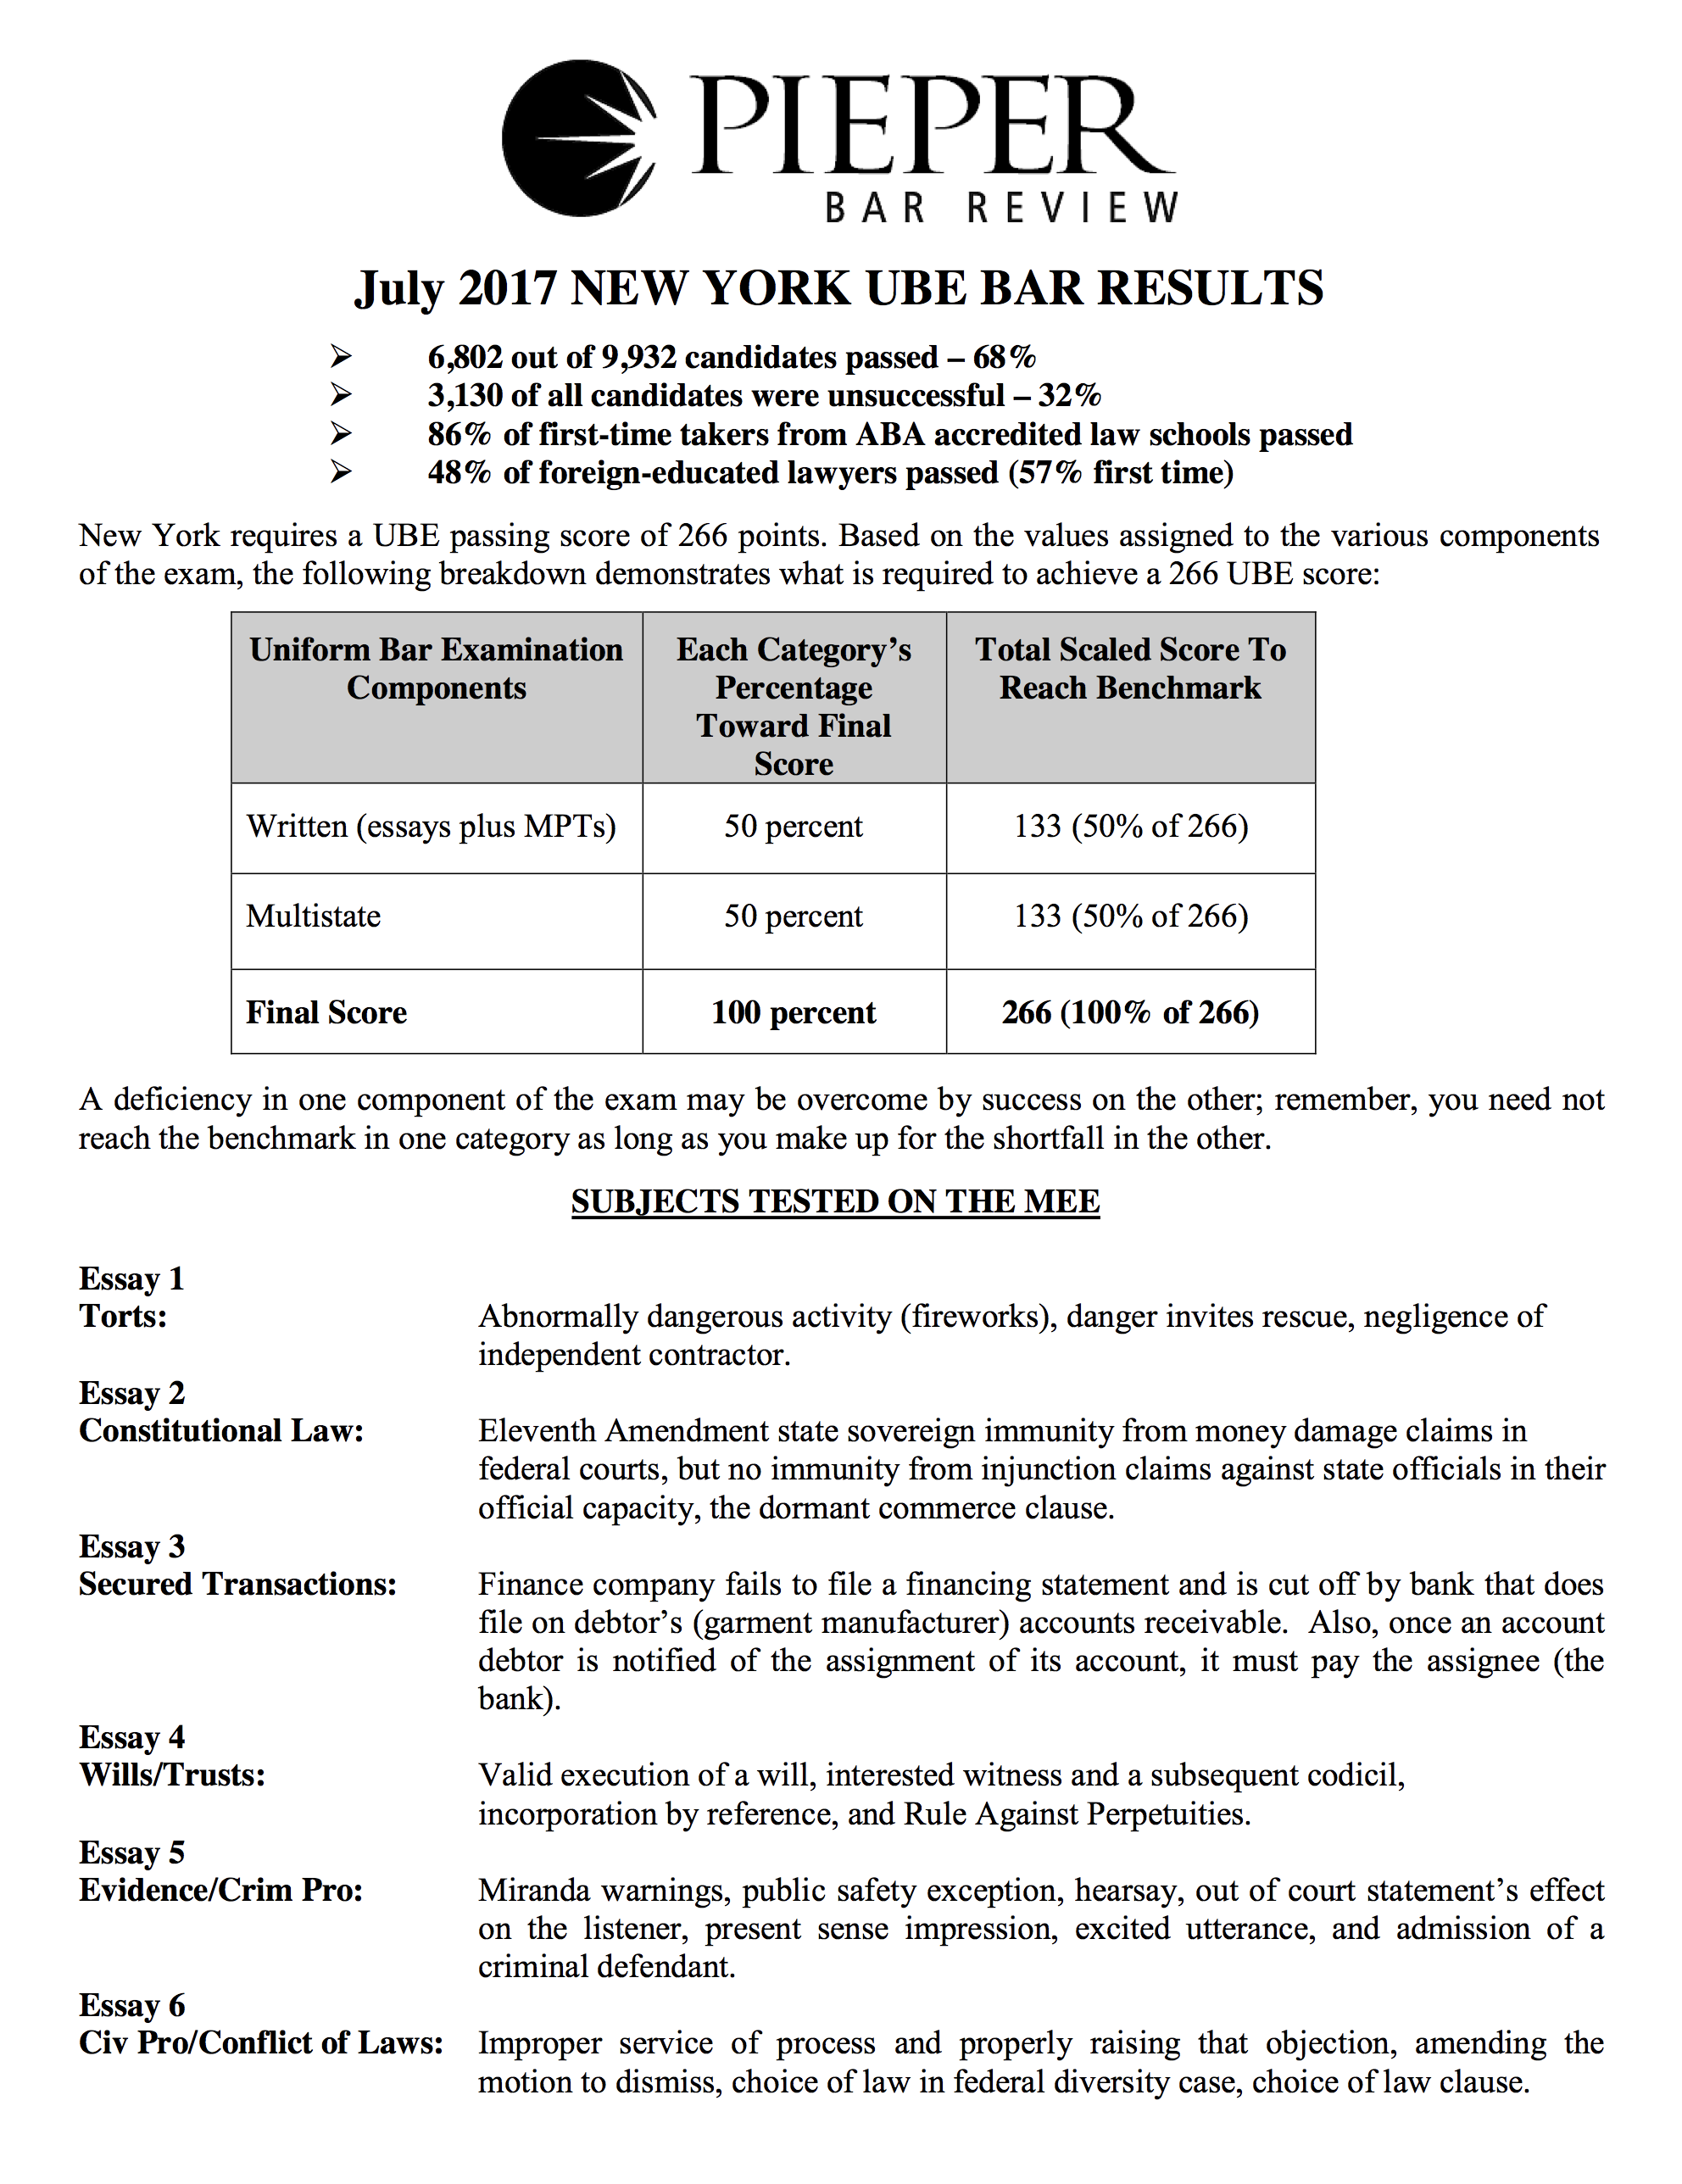 i-failed-the-bar-exam-july17.png